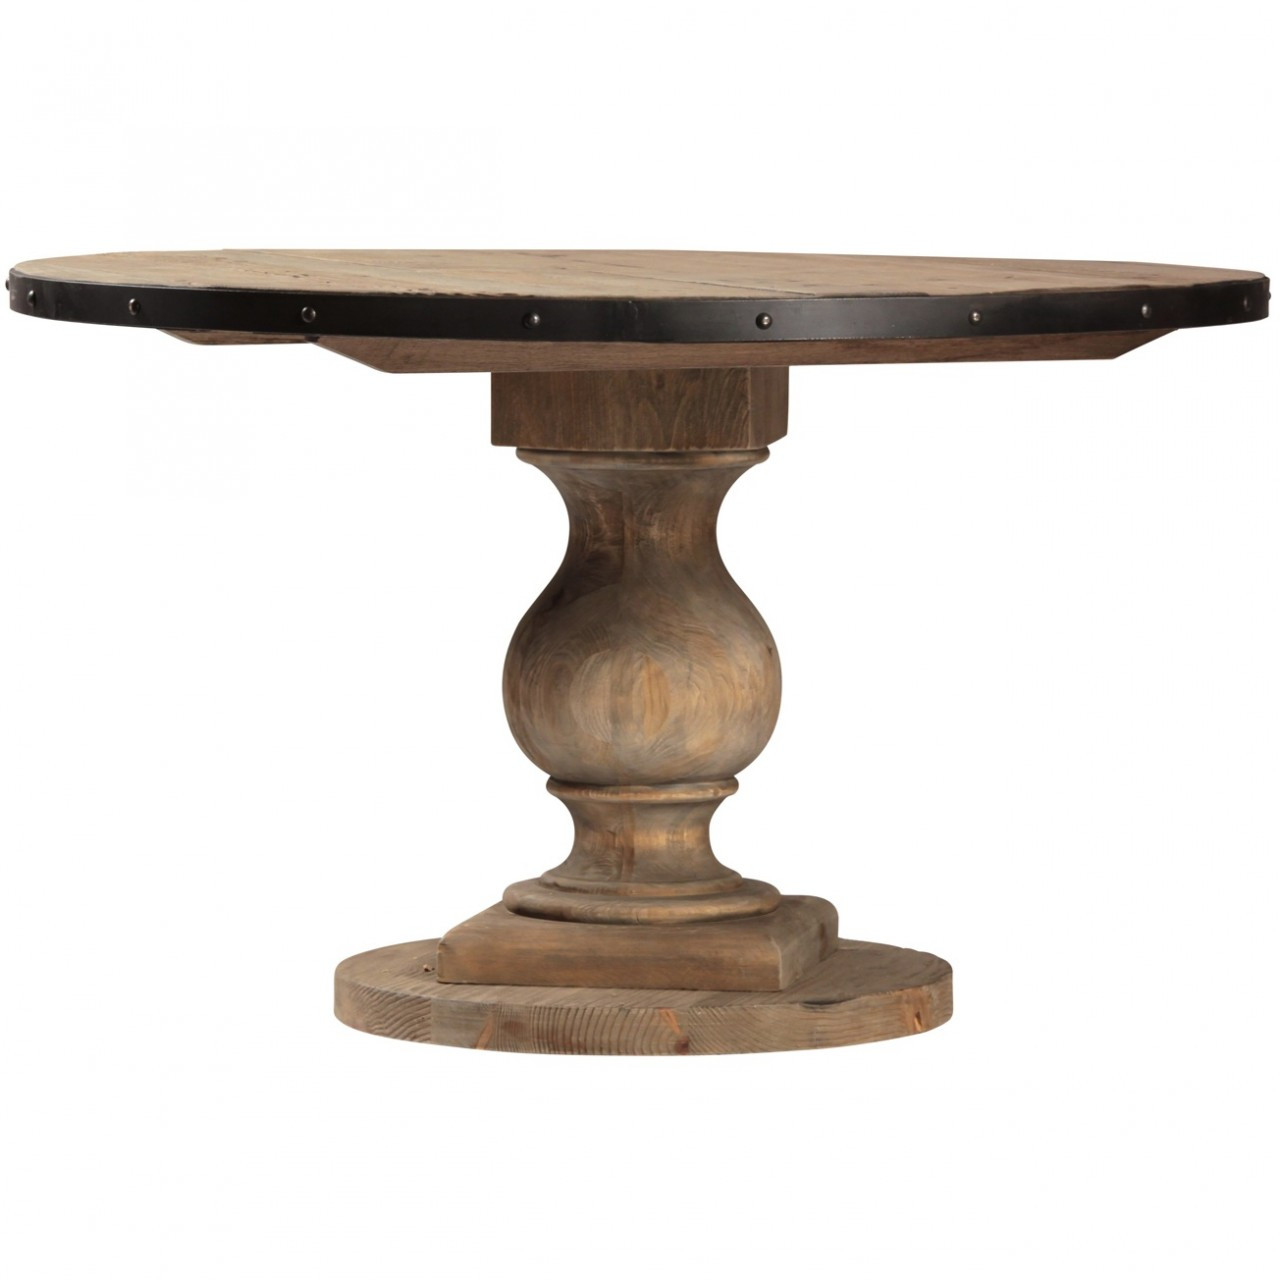 Industrialroundfarmhouseroundpedestaltable7588413503506551280